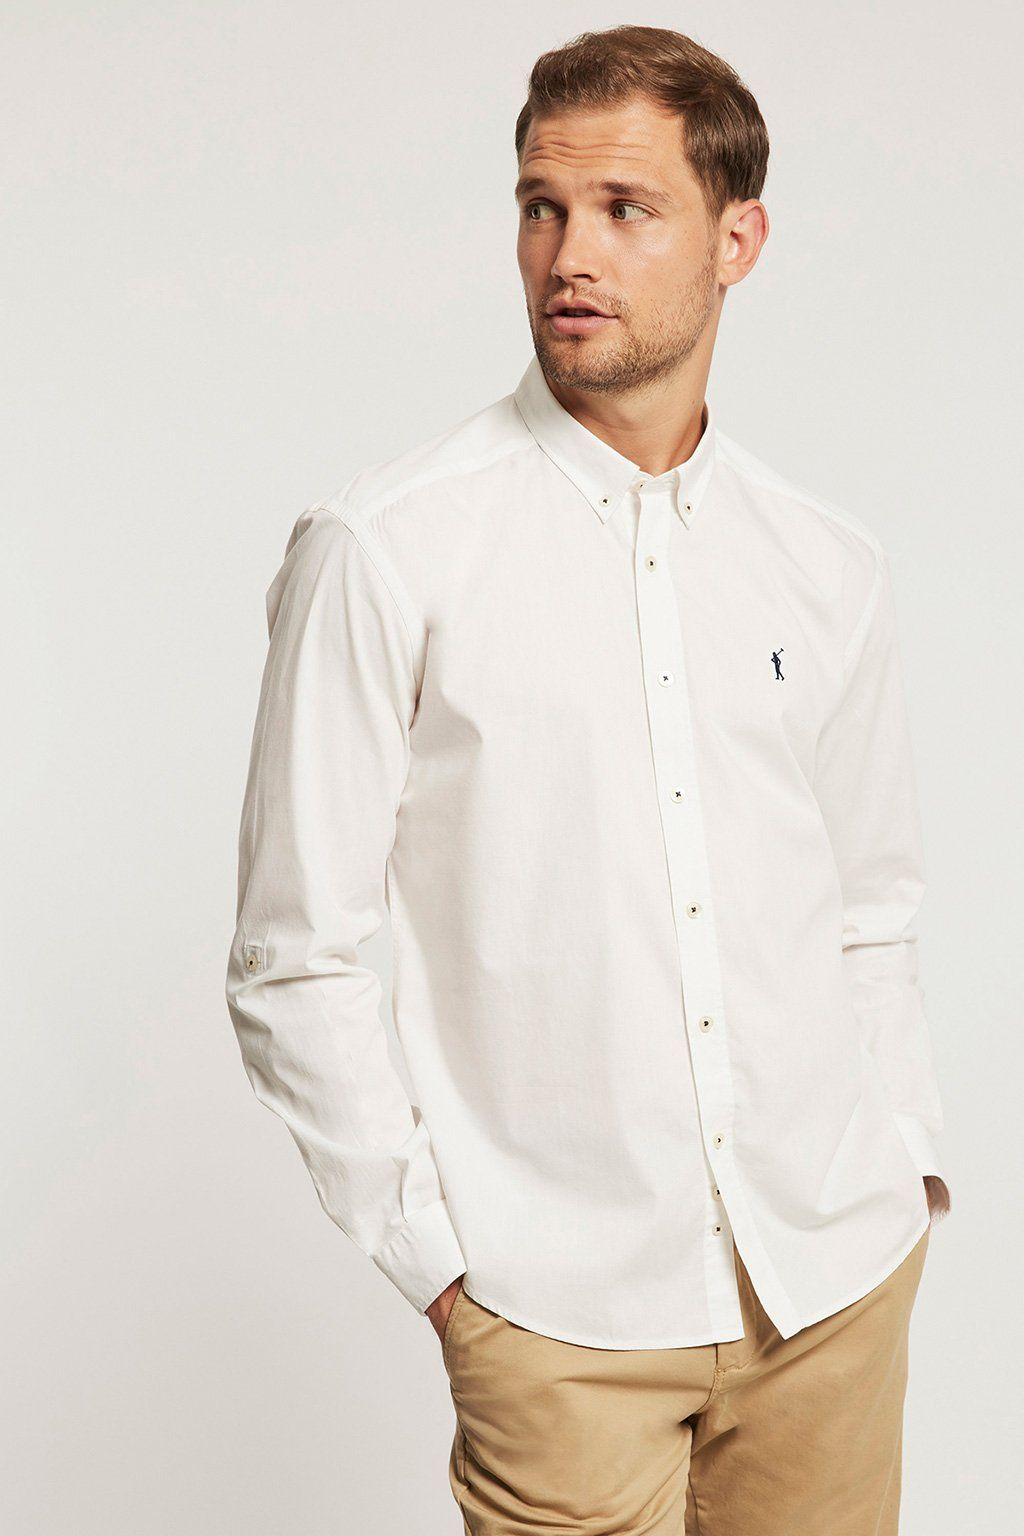 White poplin custom fit shirt